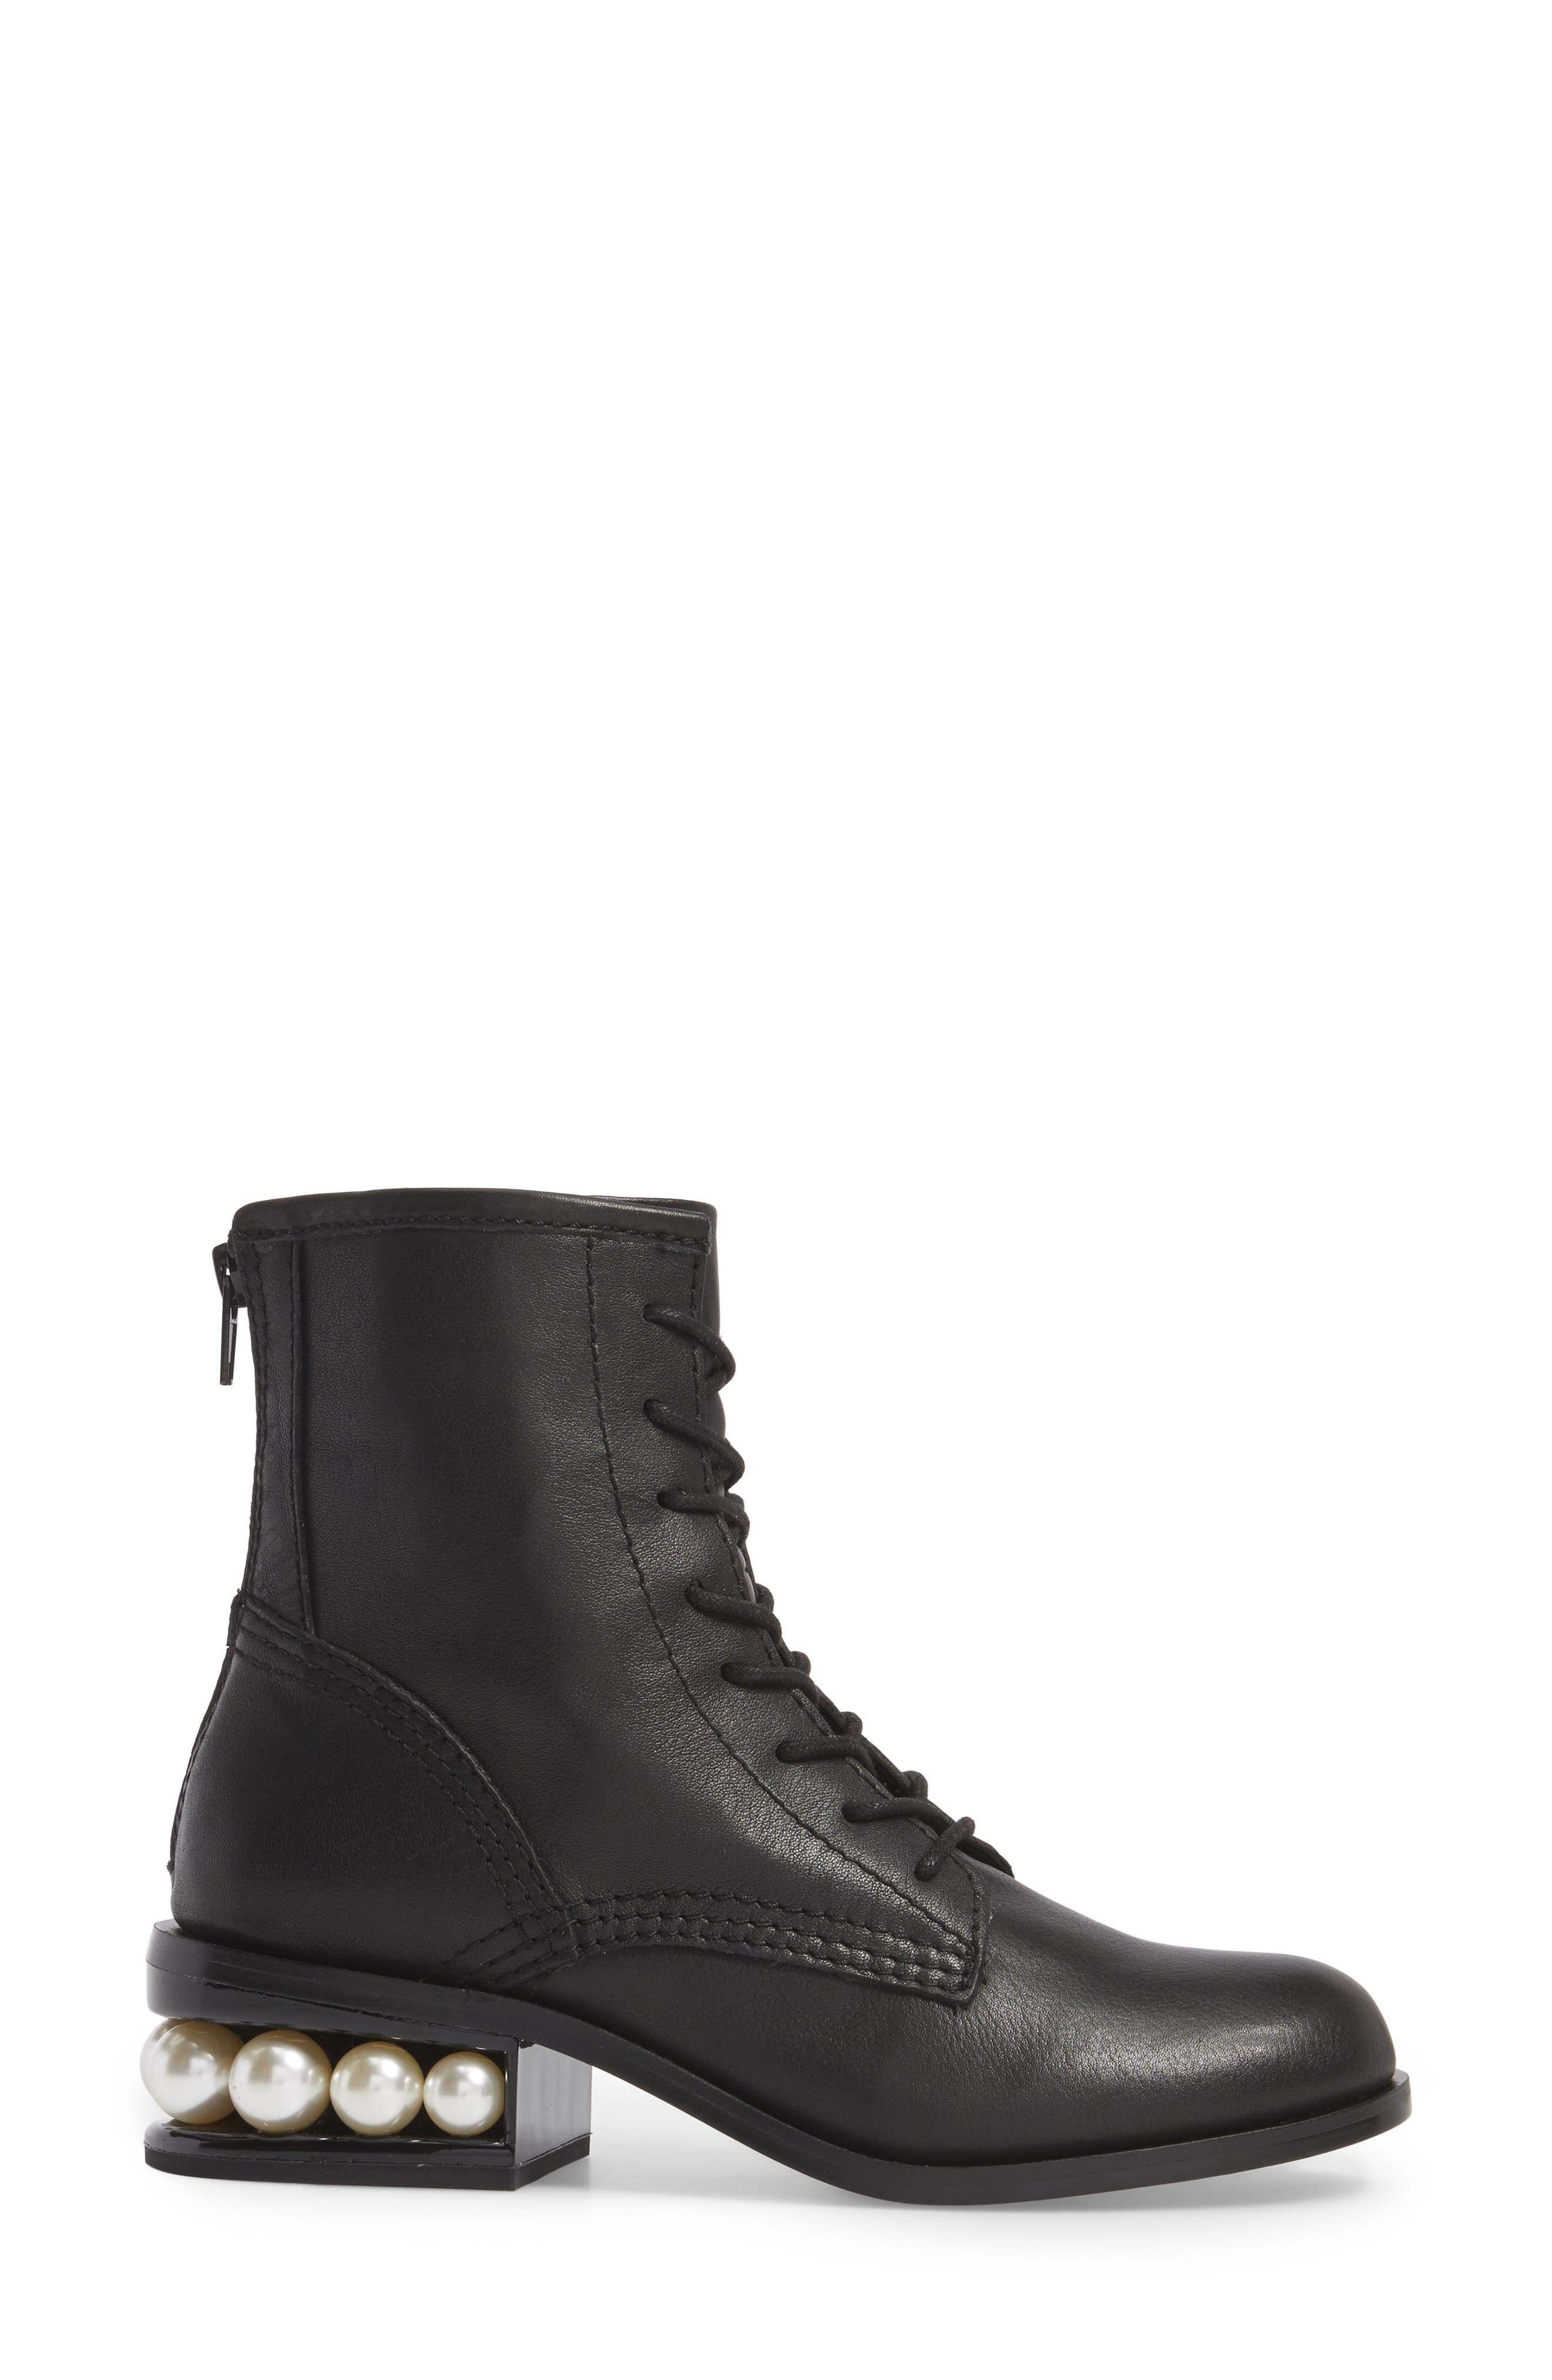 Pixy Statement Heel Boot,                             Alternate thumbnail 3, color,                             Black Leather